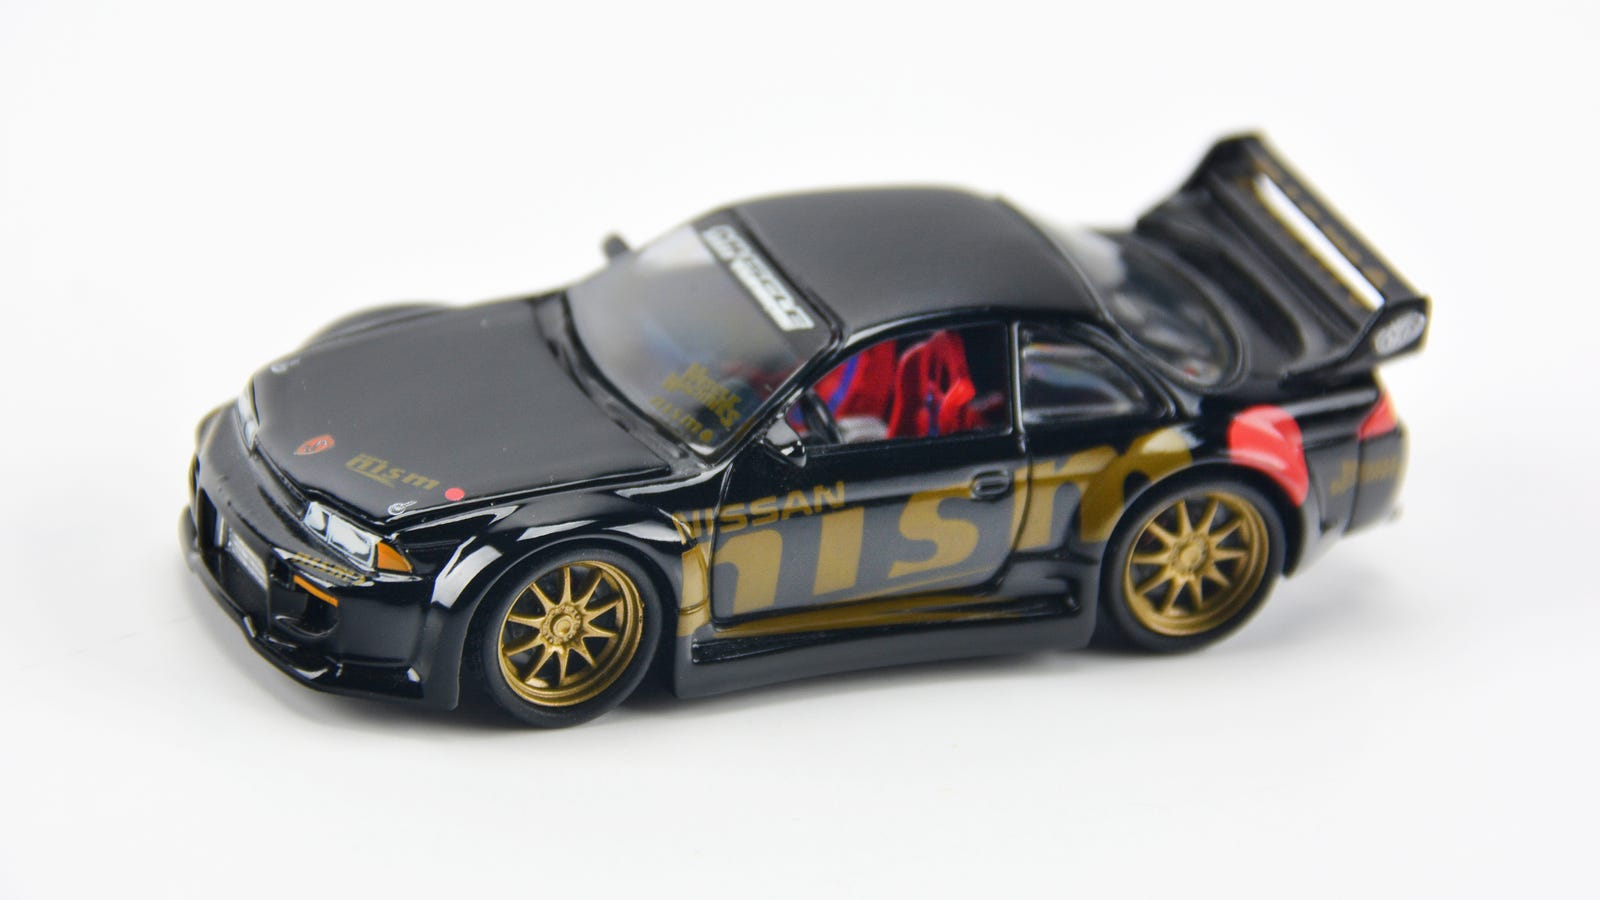 Muscle Machine Nissan Silvia - Live and Let Diecast!